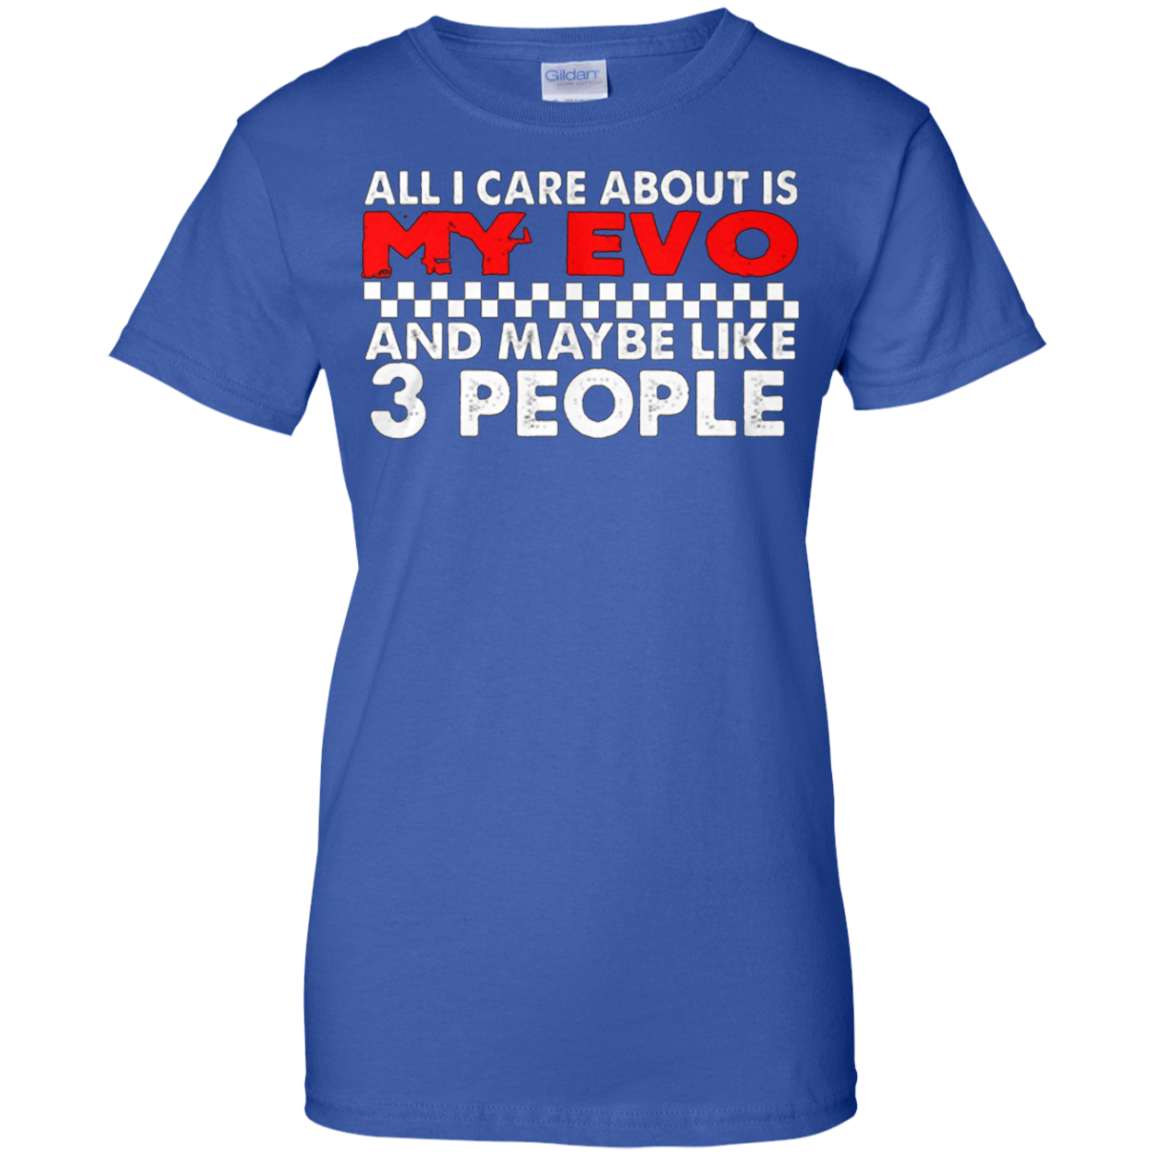 Evo shirt - ALL I CARE ABOUT IS MY EVO & MAYBE LIKE 3 PEOPLE